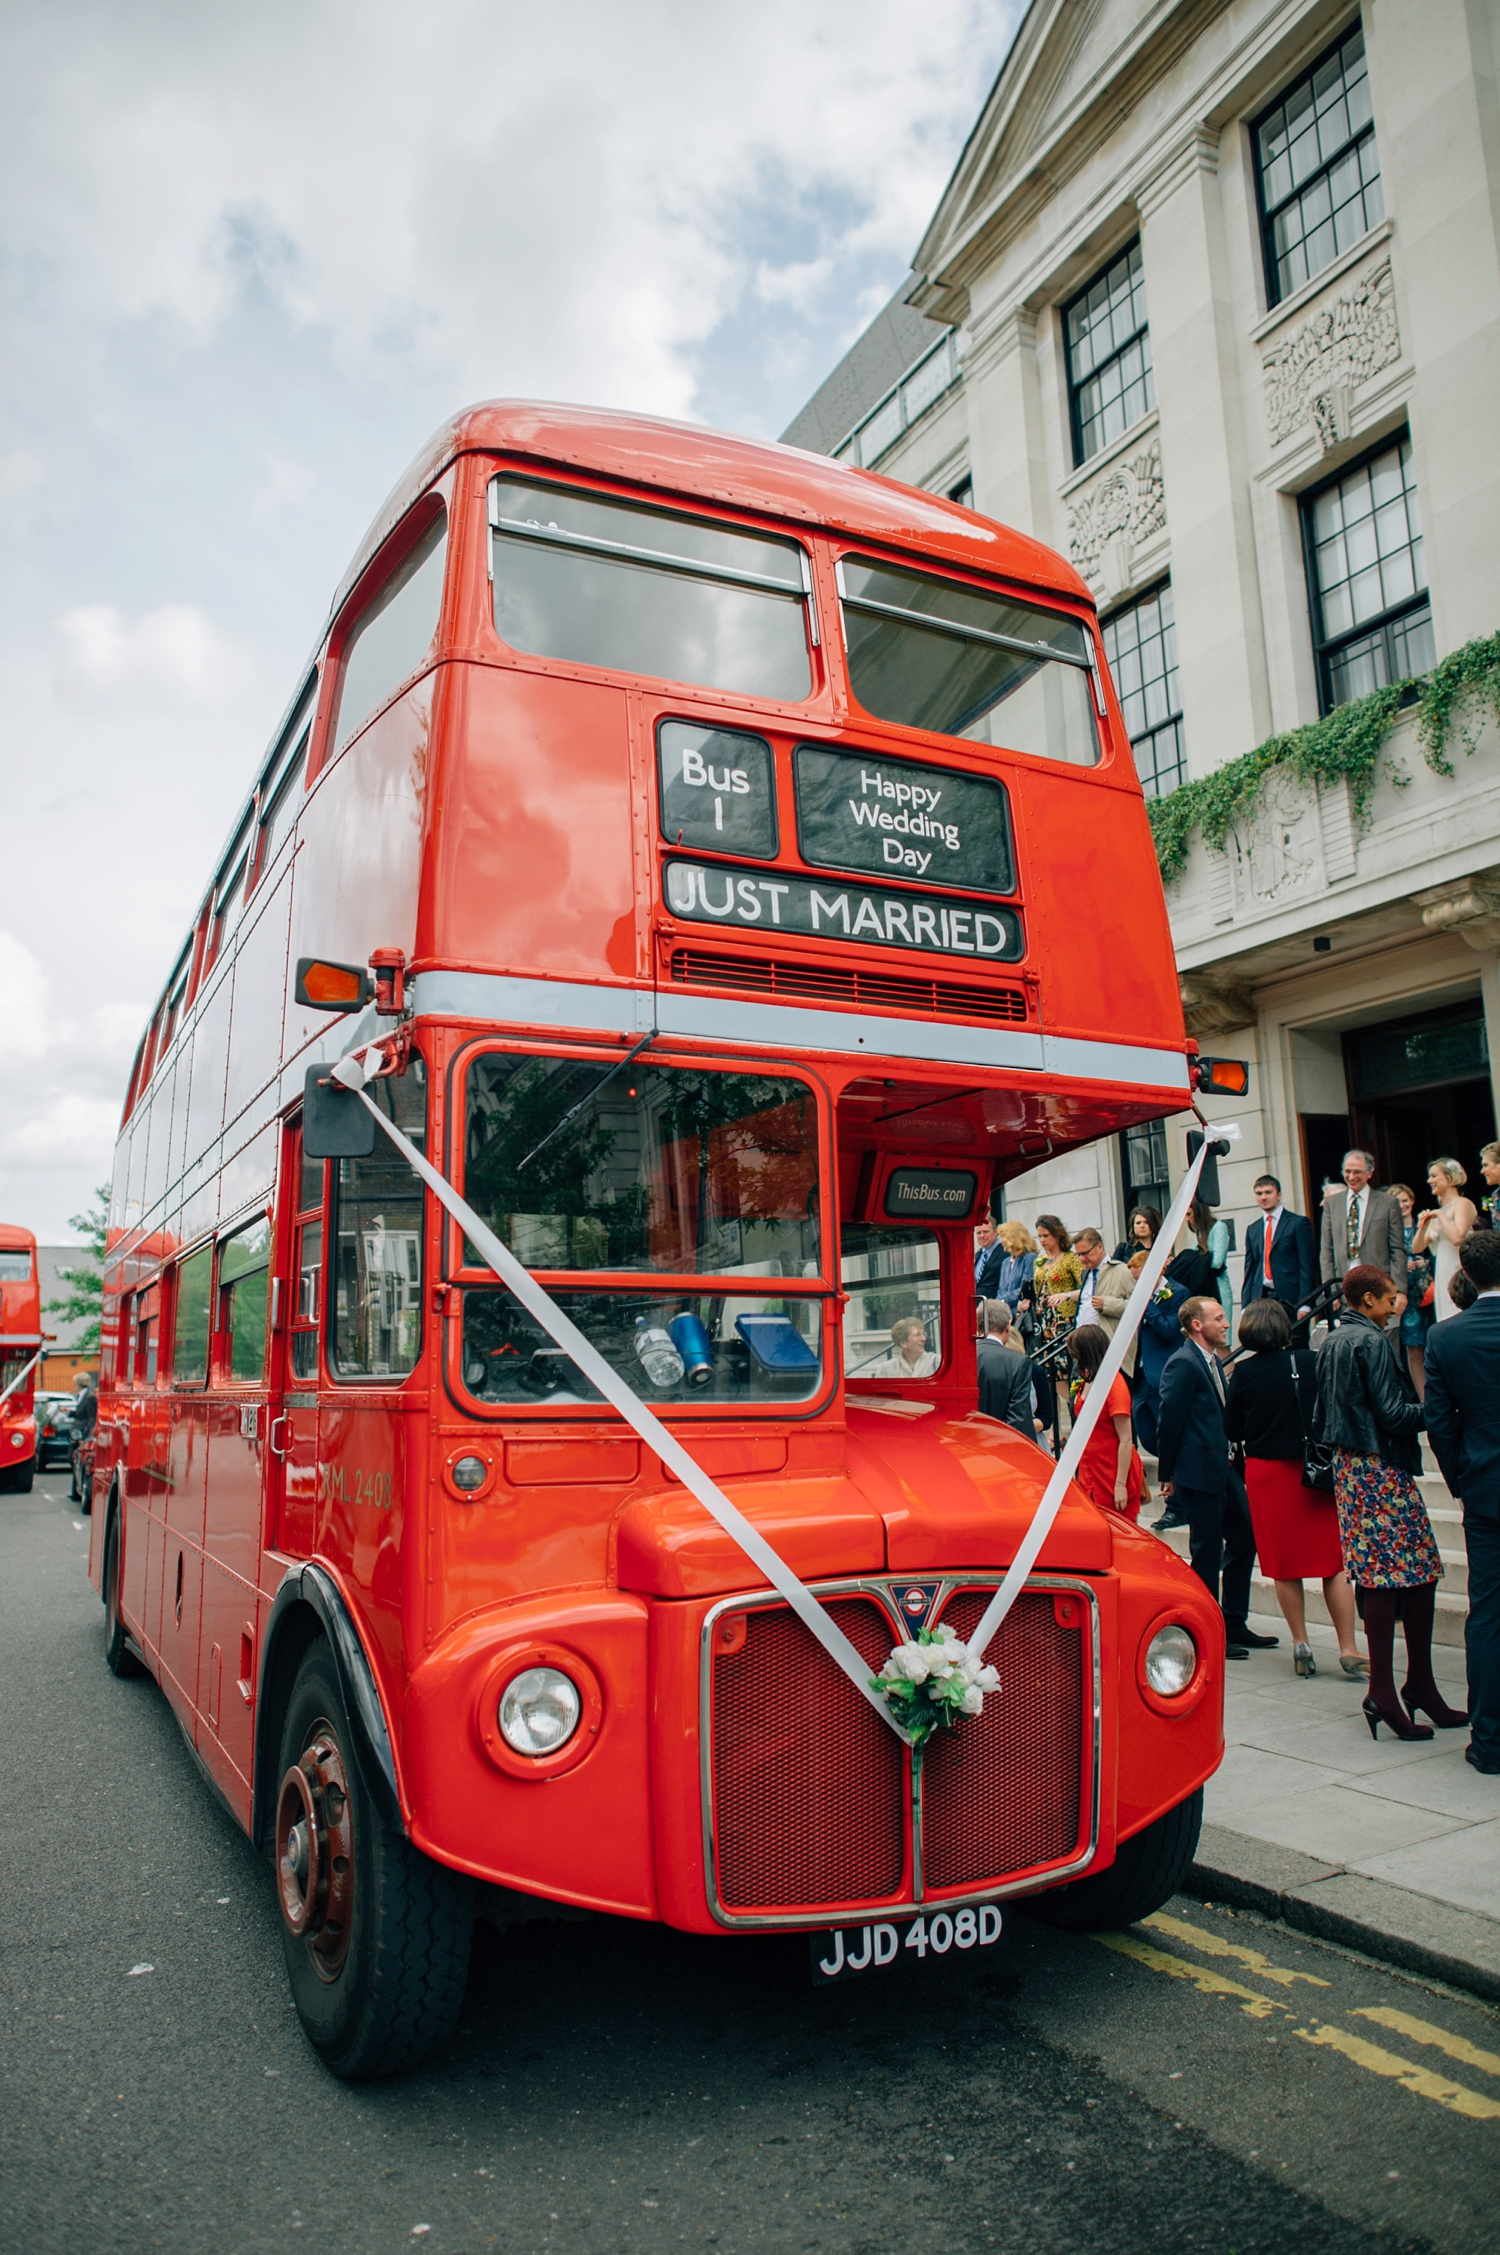 0082-lisa-devine-alternative-wedding-photography-london-hackney-dalston-london-photography-townhall-hotel.JPG